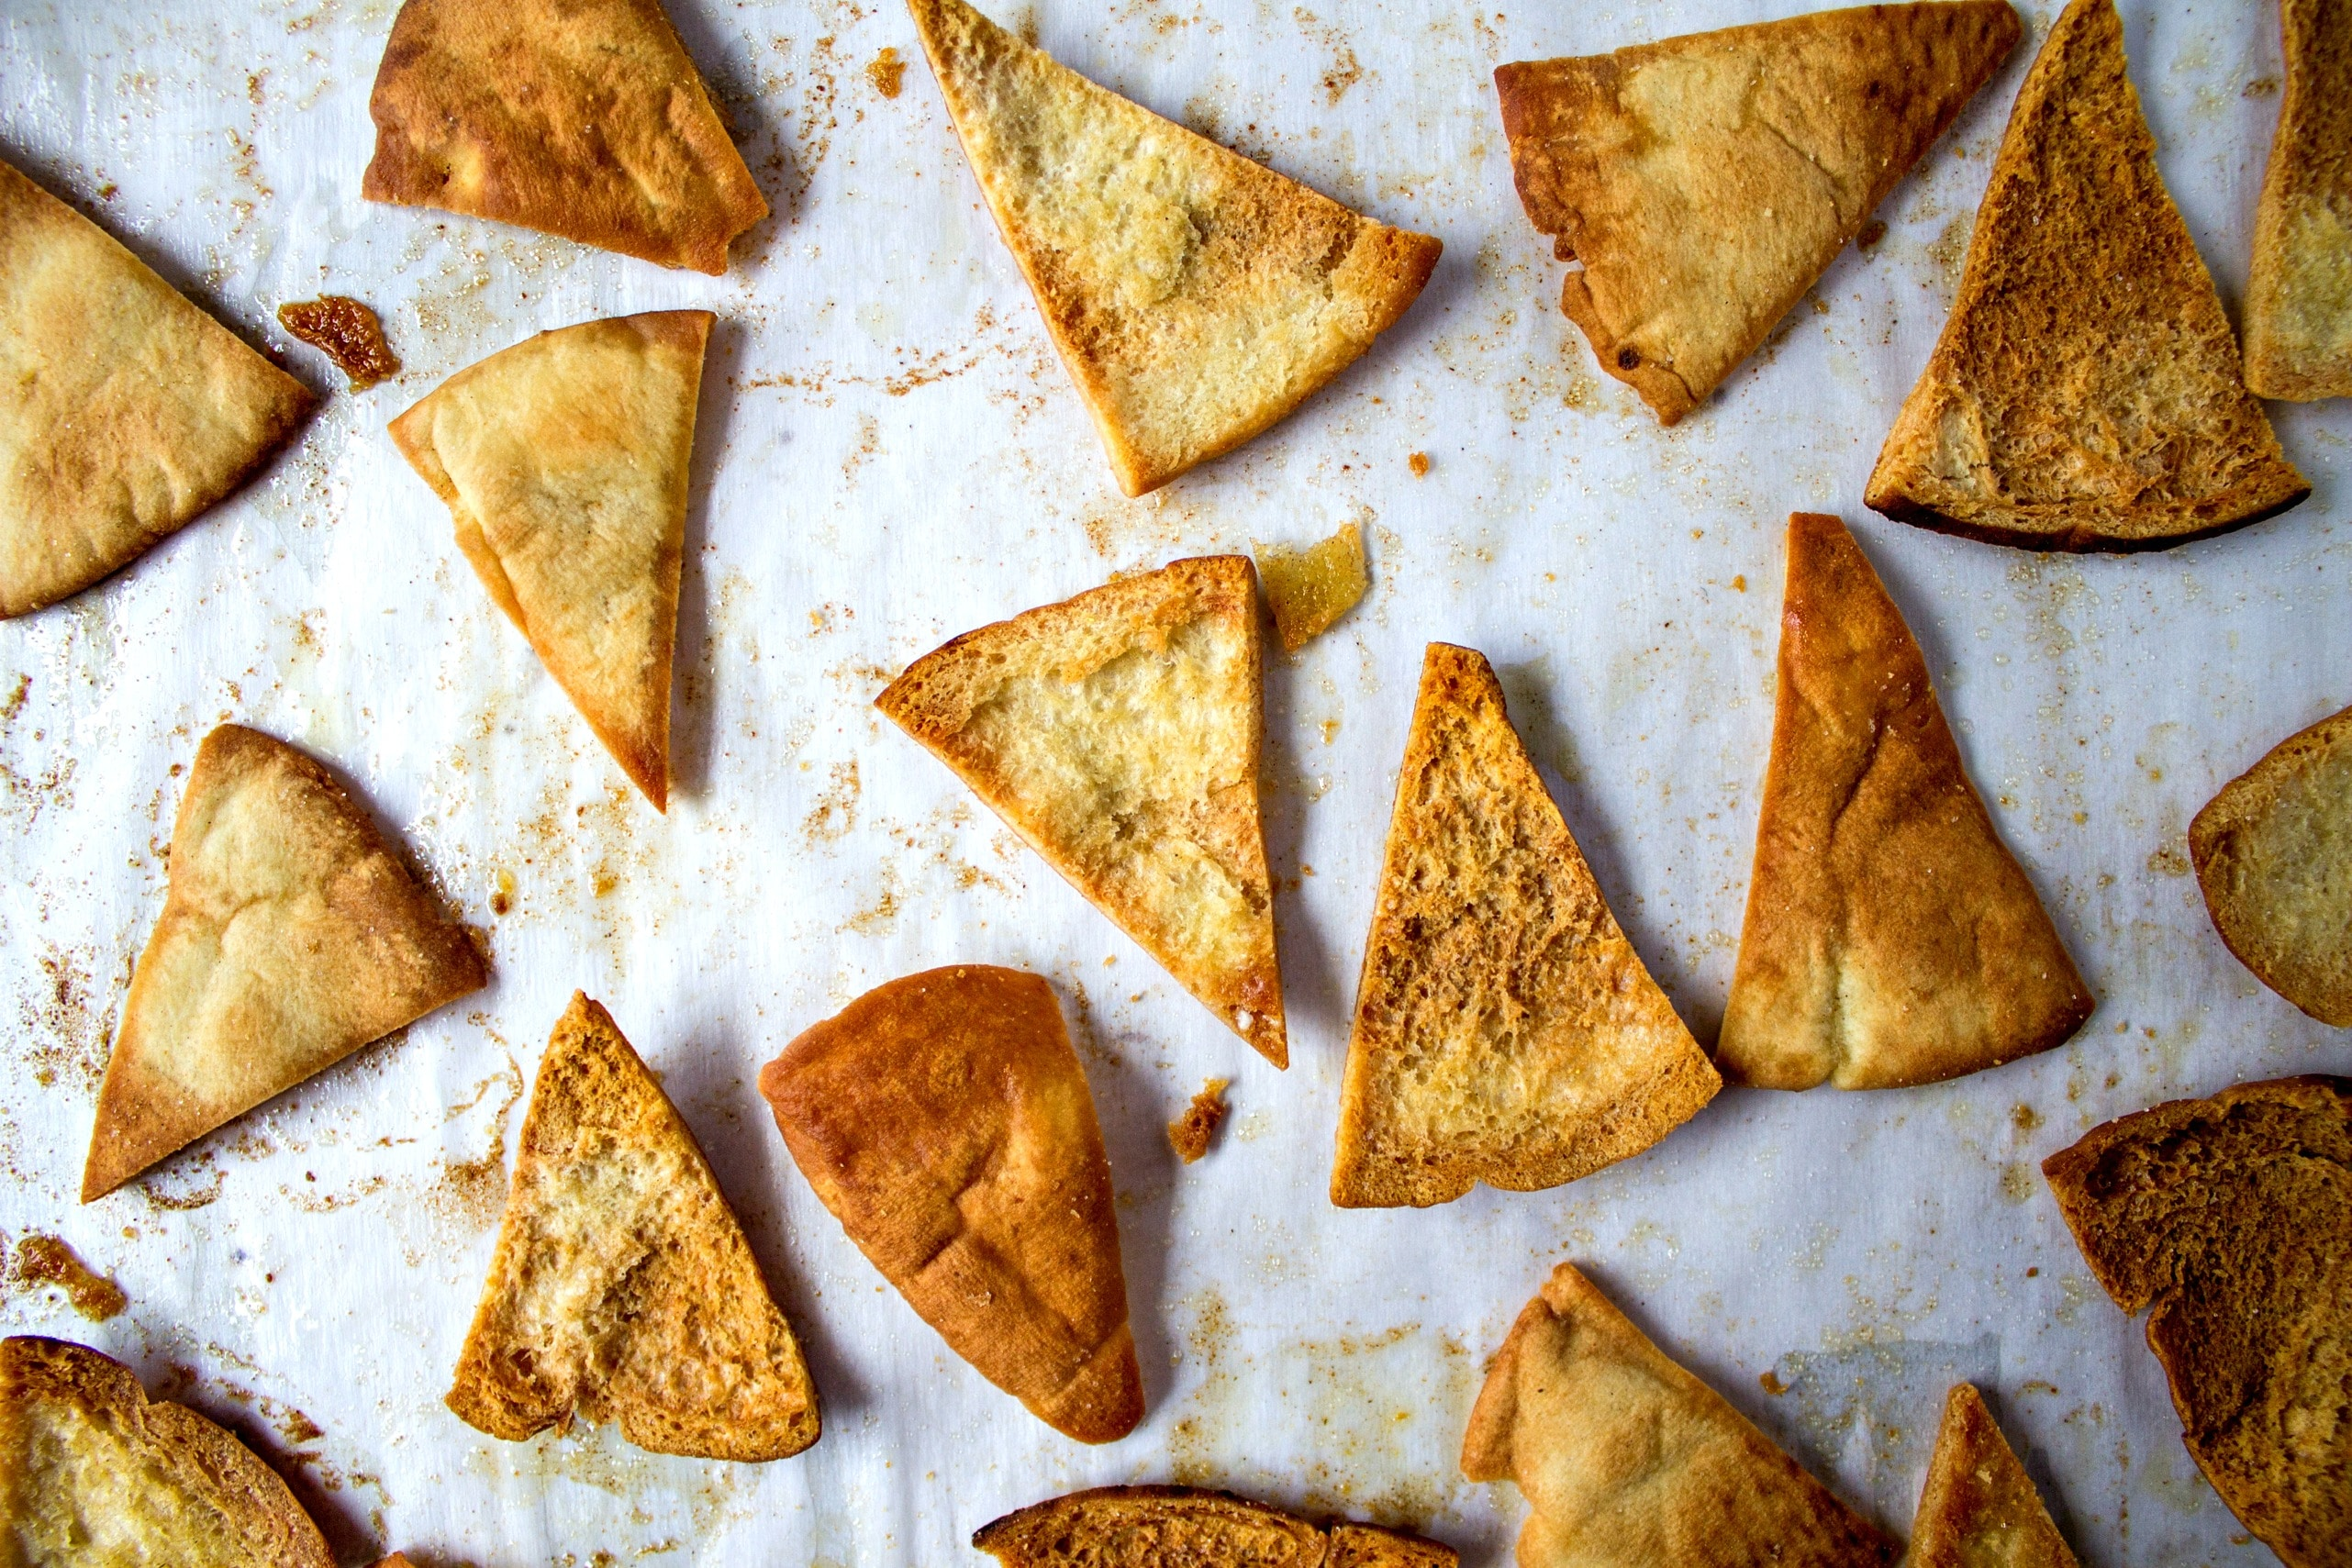 Sage and Browned Butter Chips cut into triangles